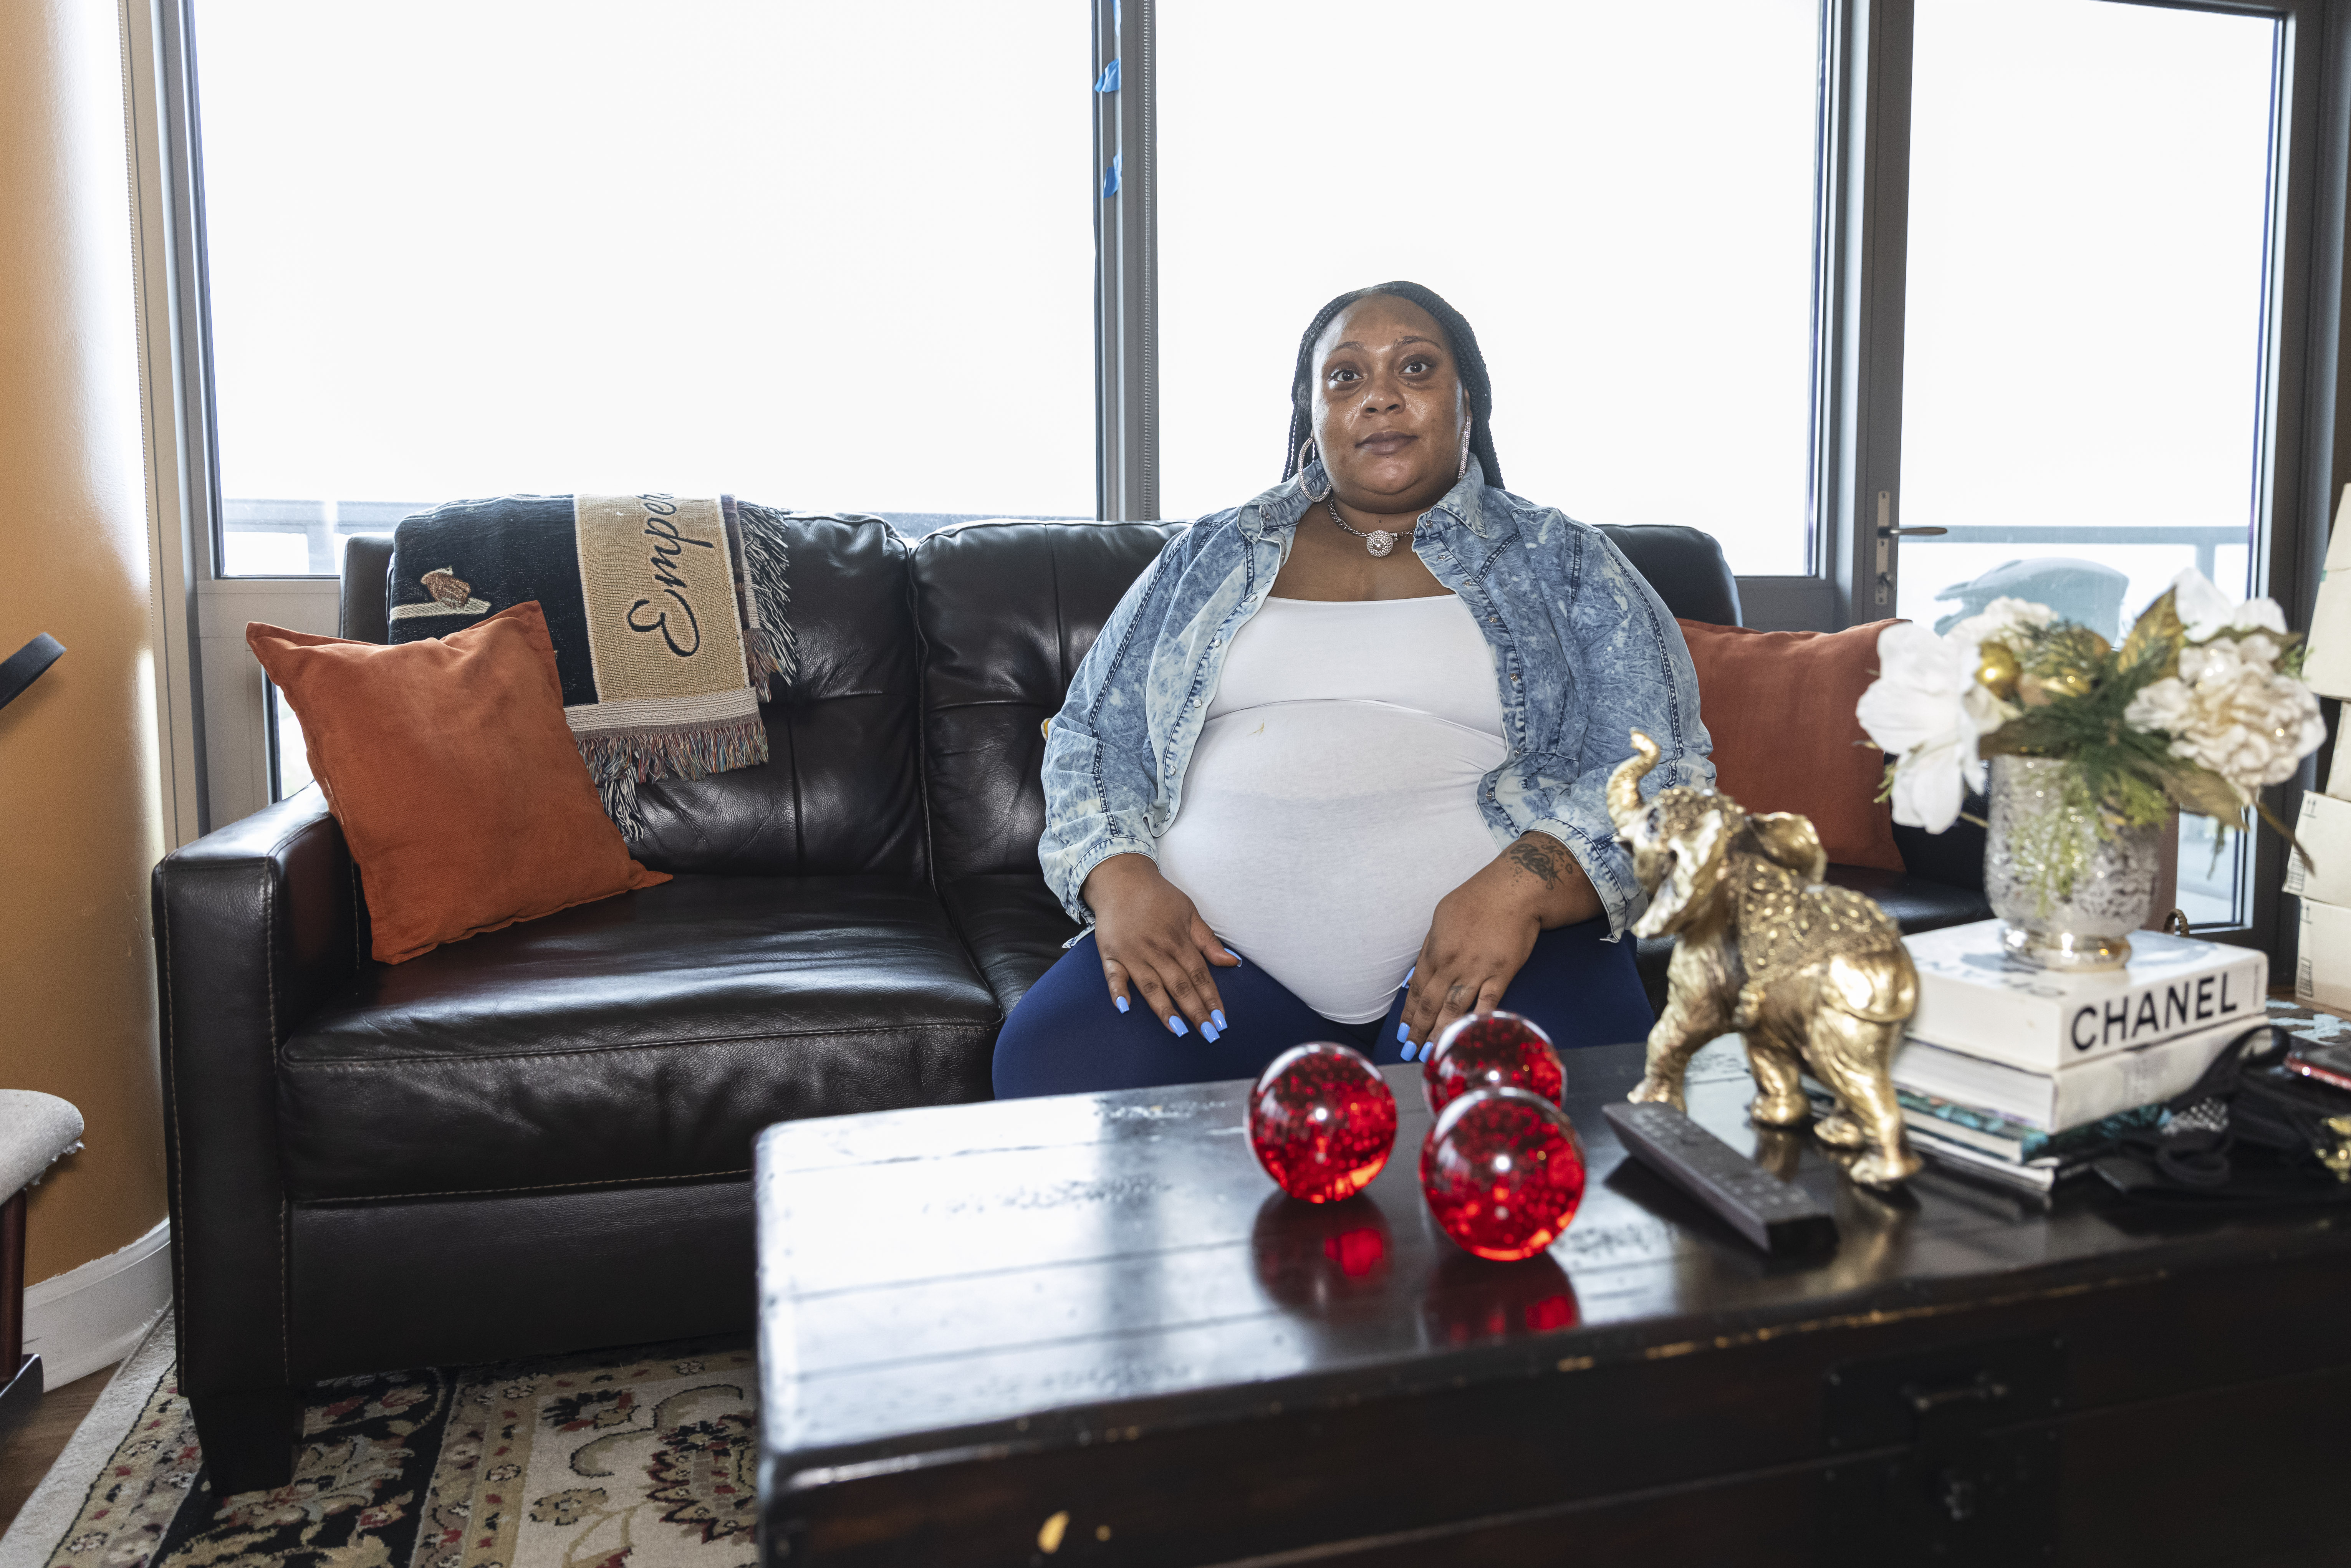 Nea Gates got her first vaccine dose Oct. 6, when she was seven months pregnant. Seeing continual reports of pregnant women having serious COVID-19 complications made her change her mind and get vaccinated. | Anthony Vazquez/Sun-Times